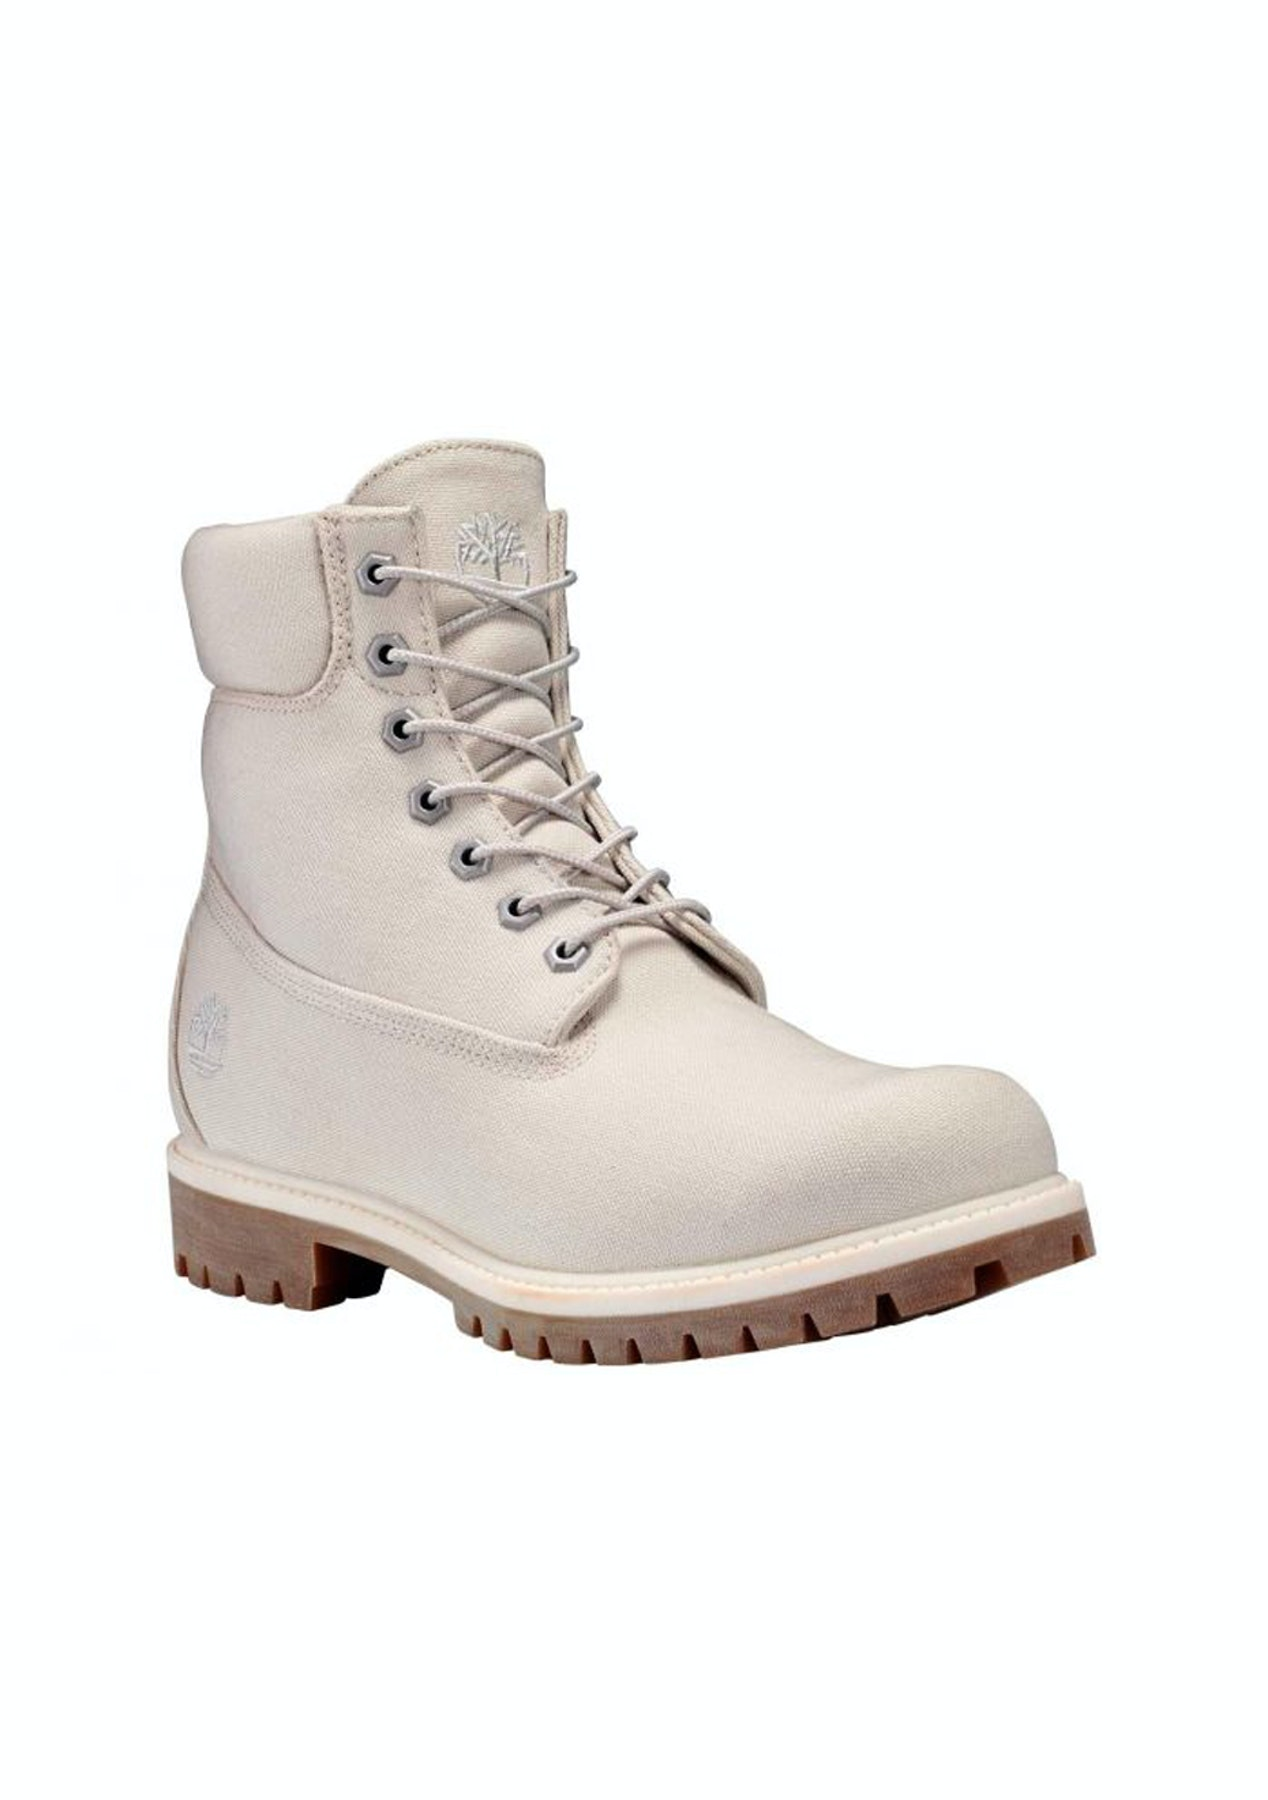 ee38b59c0094 Timberland - Mens ICON 6-Inch Premium Fabric Boot - White - Mens Streetwear  Outlet - Onceit